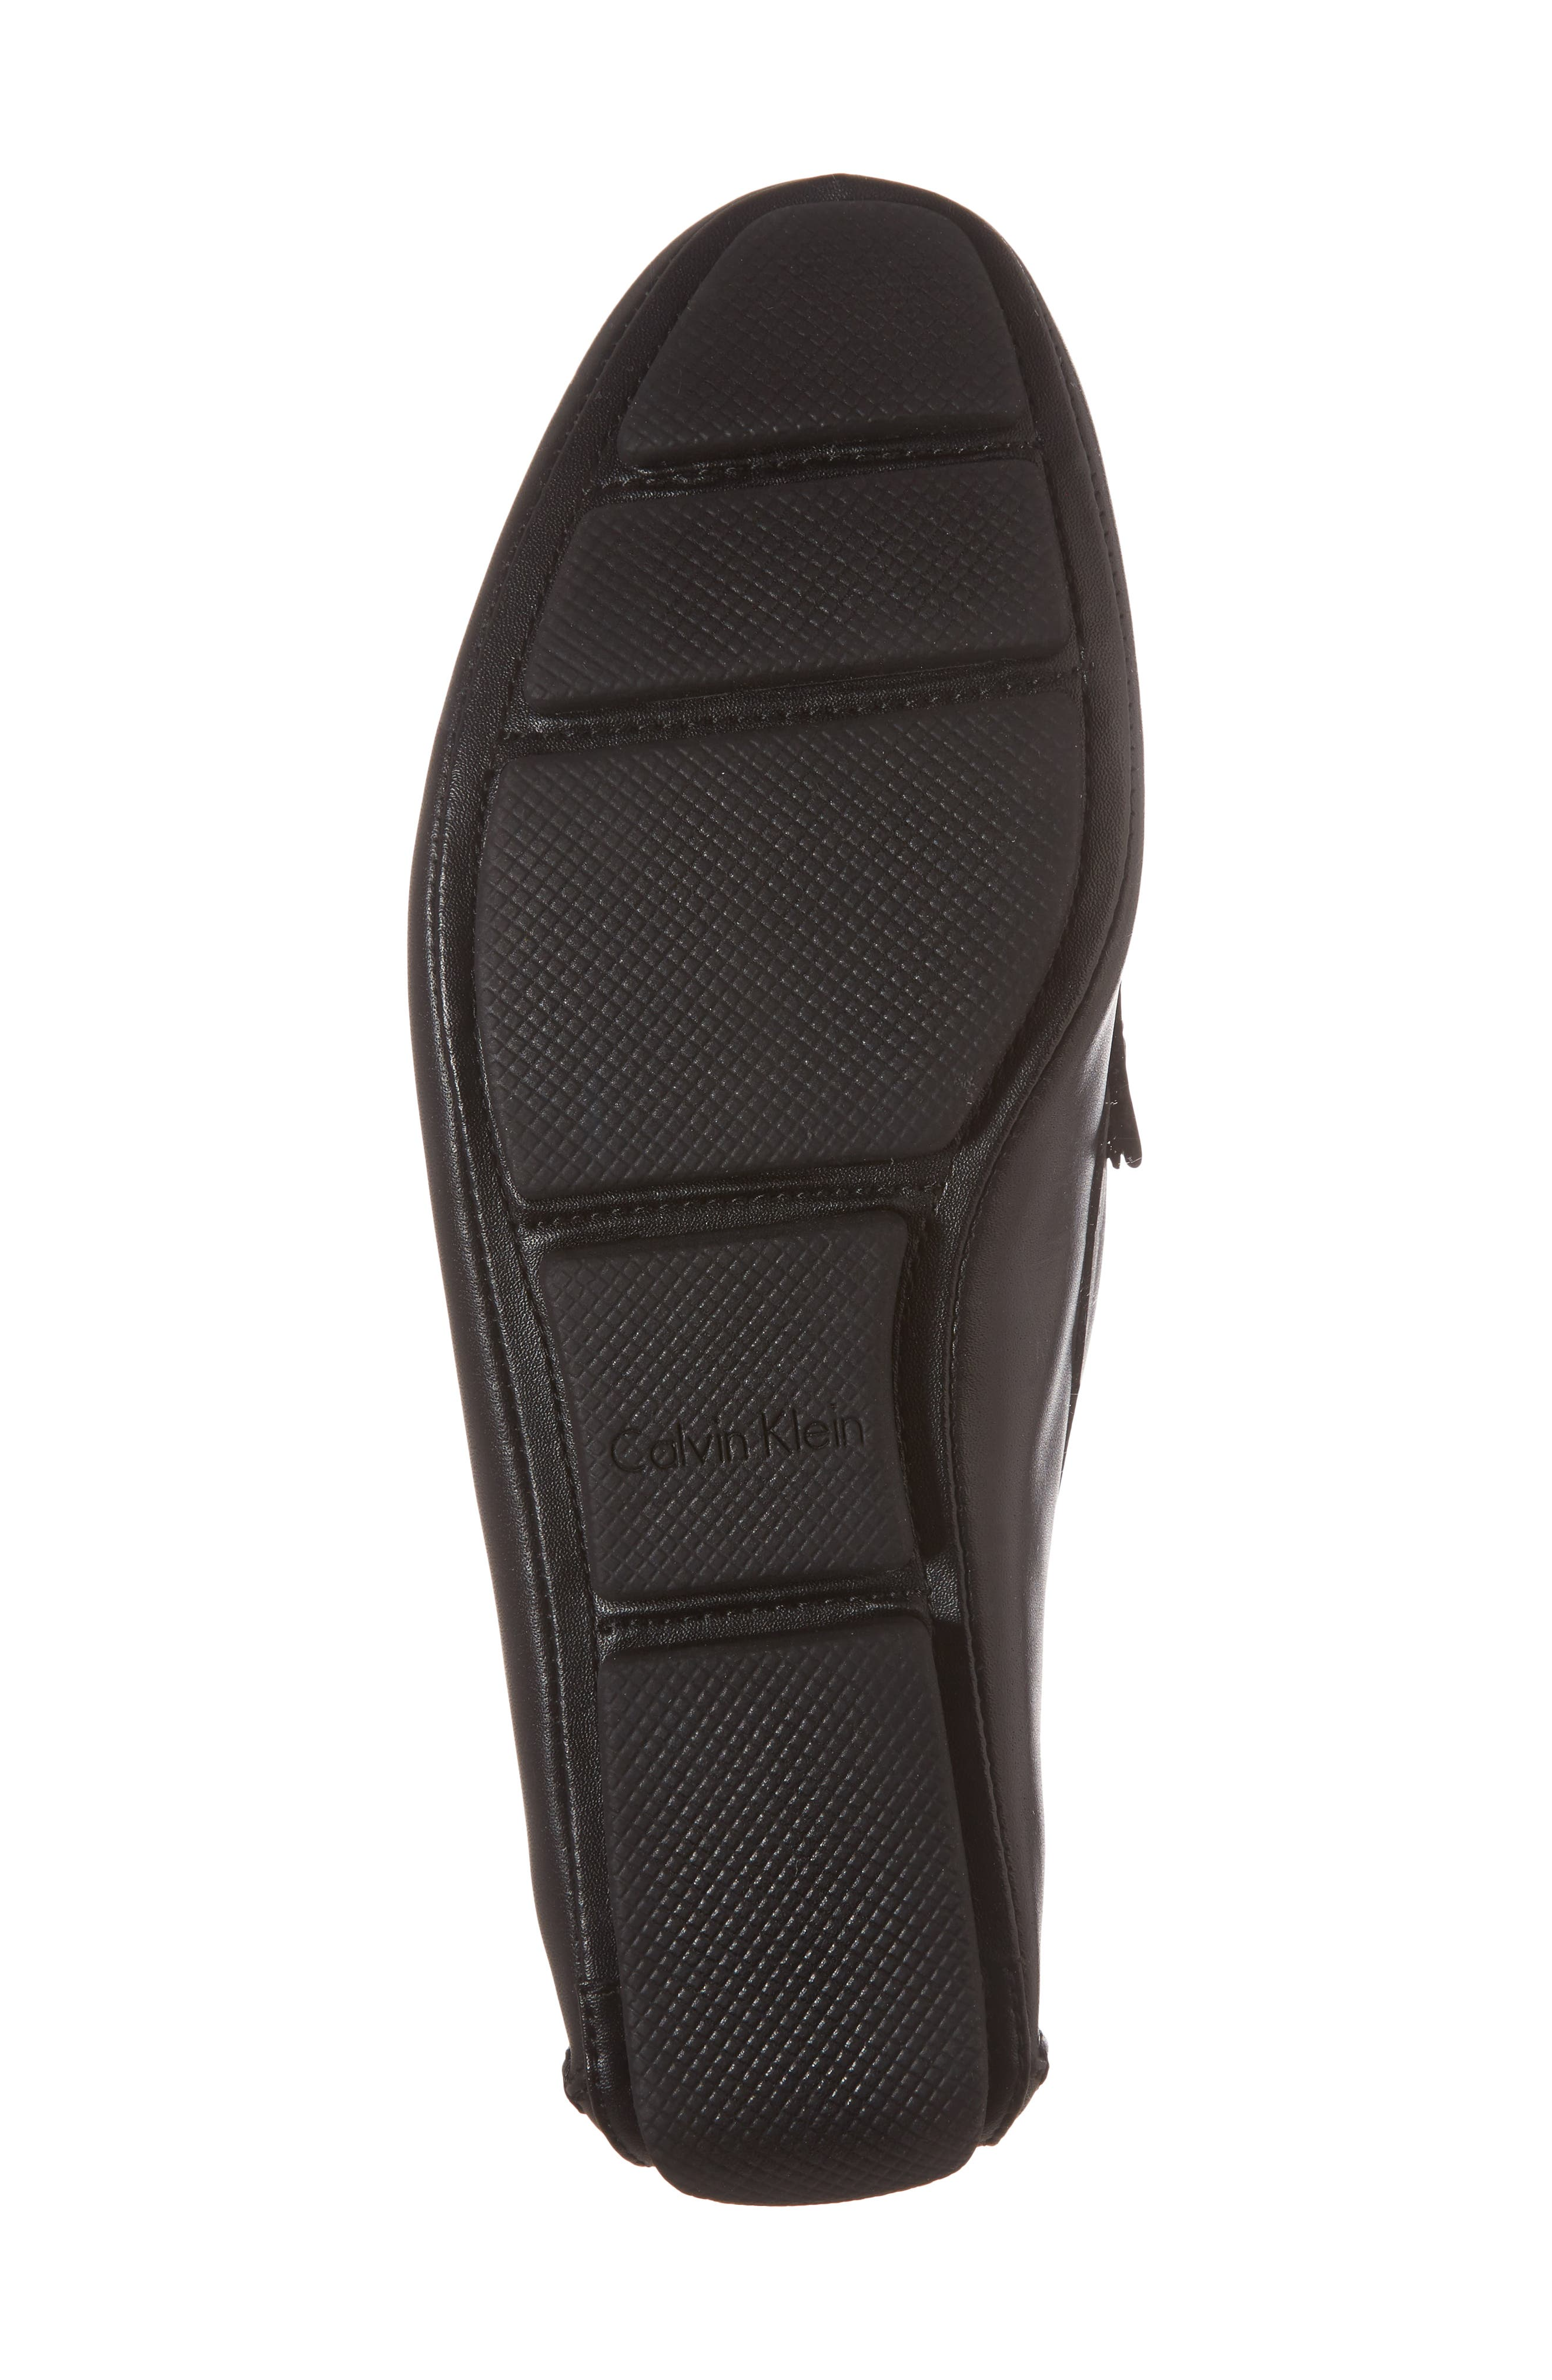 CALVIN KLEIN, Maddix Textured Driving Moccasin, Alternate thumbnail 6, color, BLACK LEATHER